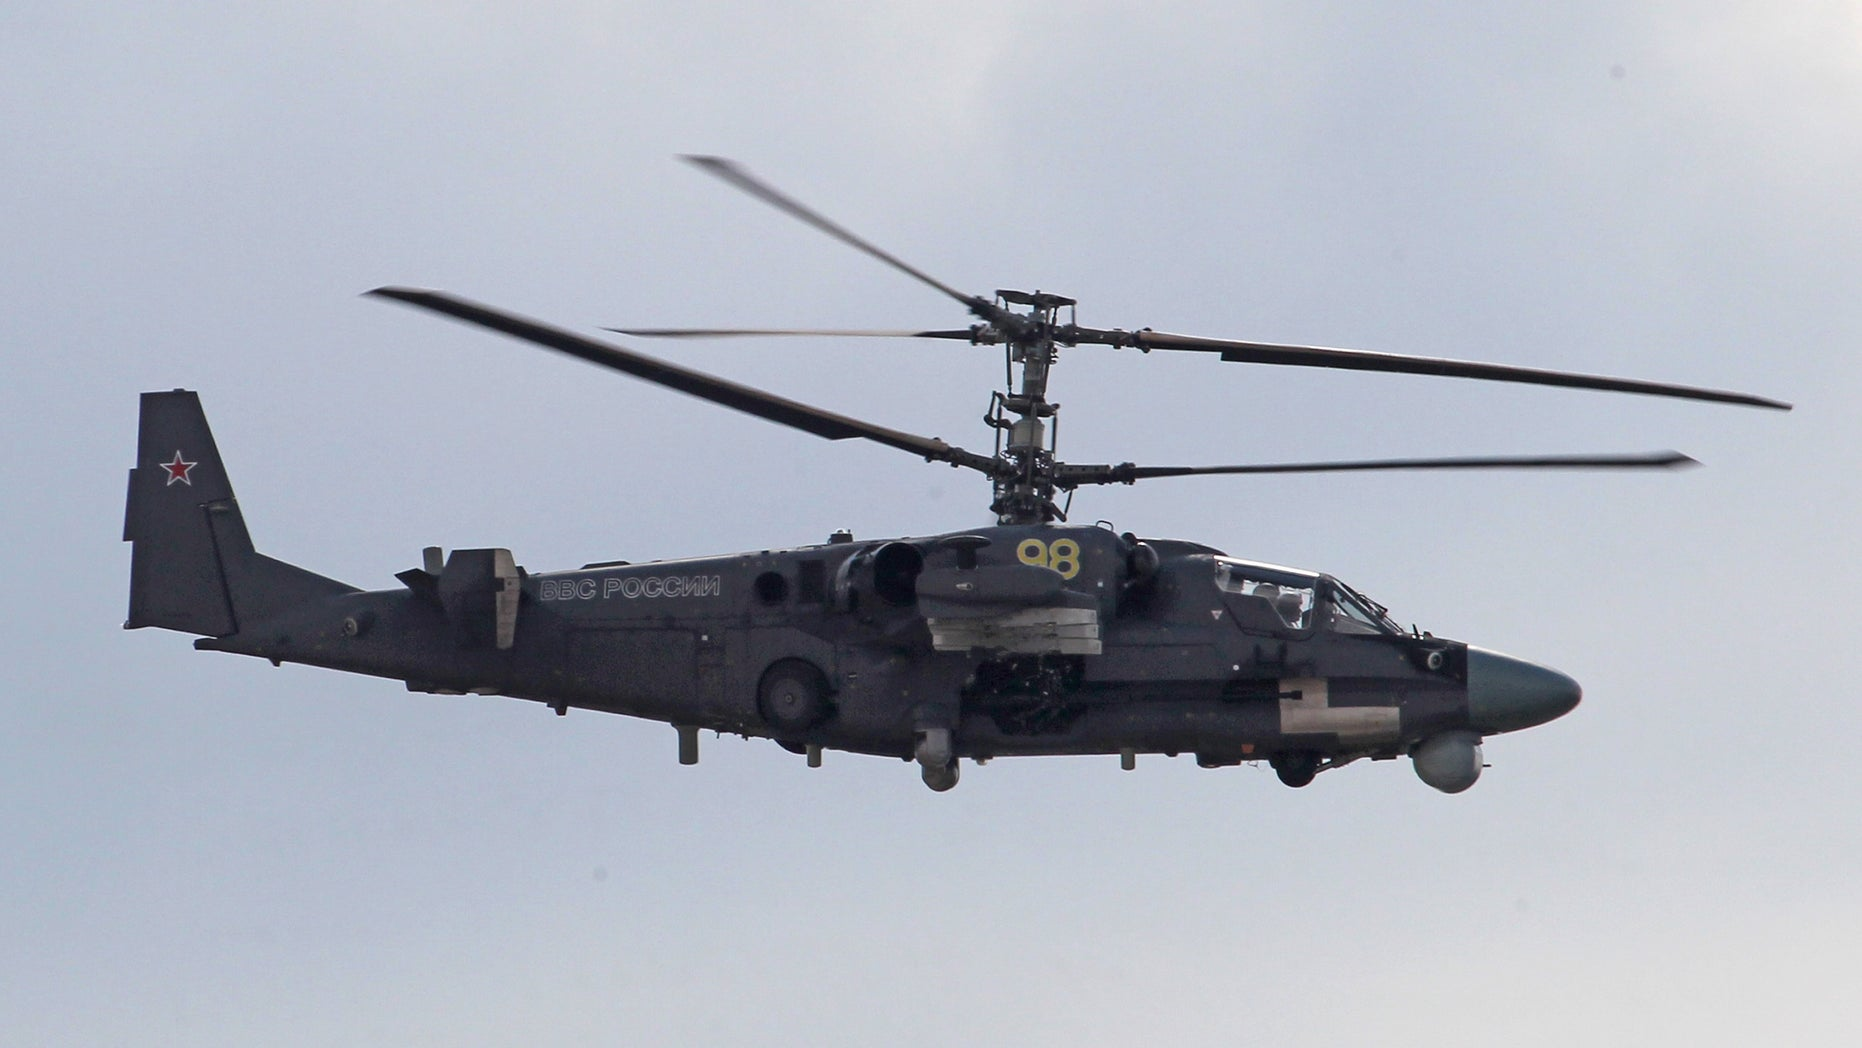 A Russian-made Ka-52 Alligator attack helicopter is seen in flight during a celebration marking the Russian air force's 100th anniversary in Zhukovsky, outside Moscow, Oct. 29, 2013.